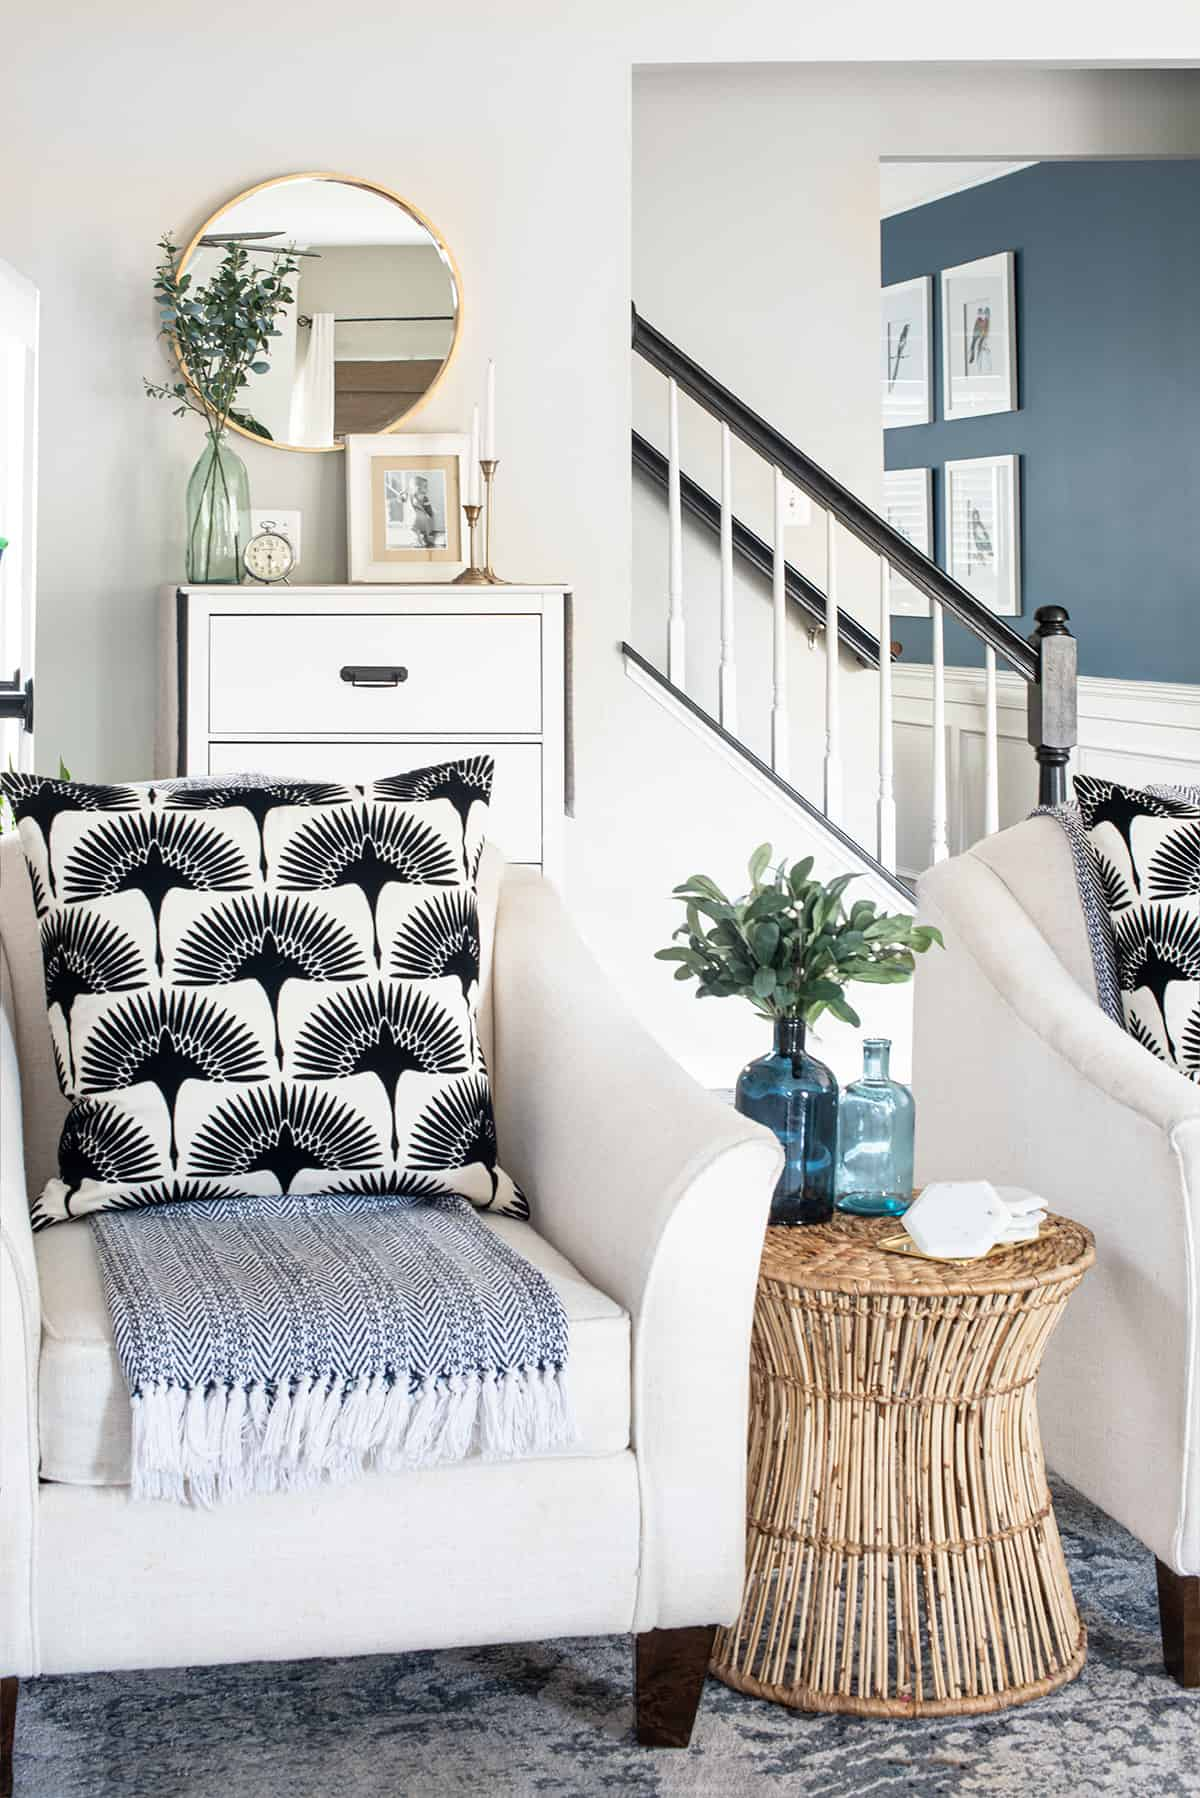 Two white accent chairs with bamboo side table in a bohemian and traditional style with staircase behind them.